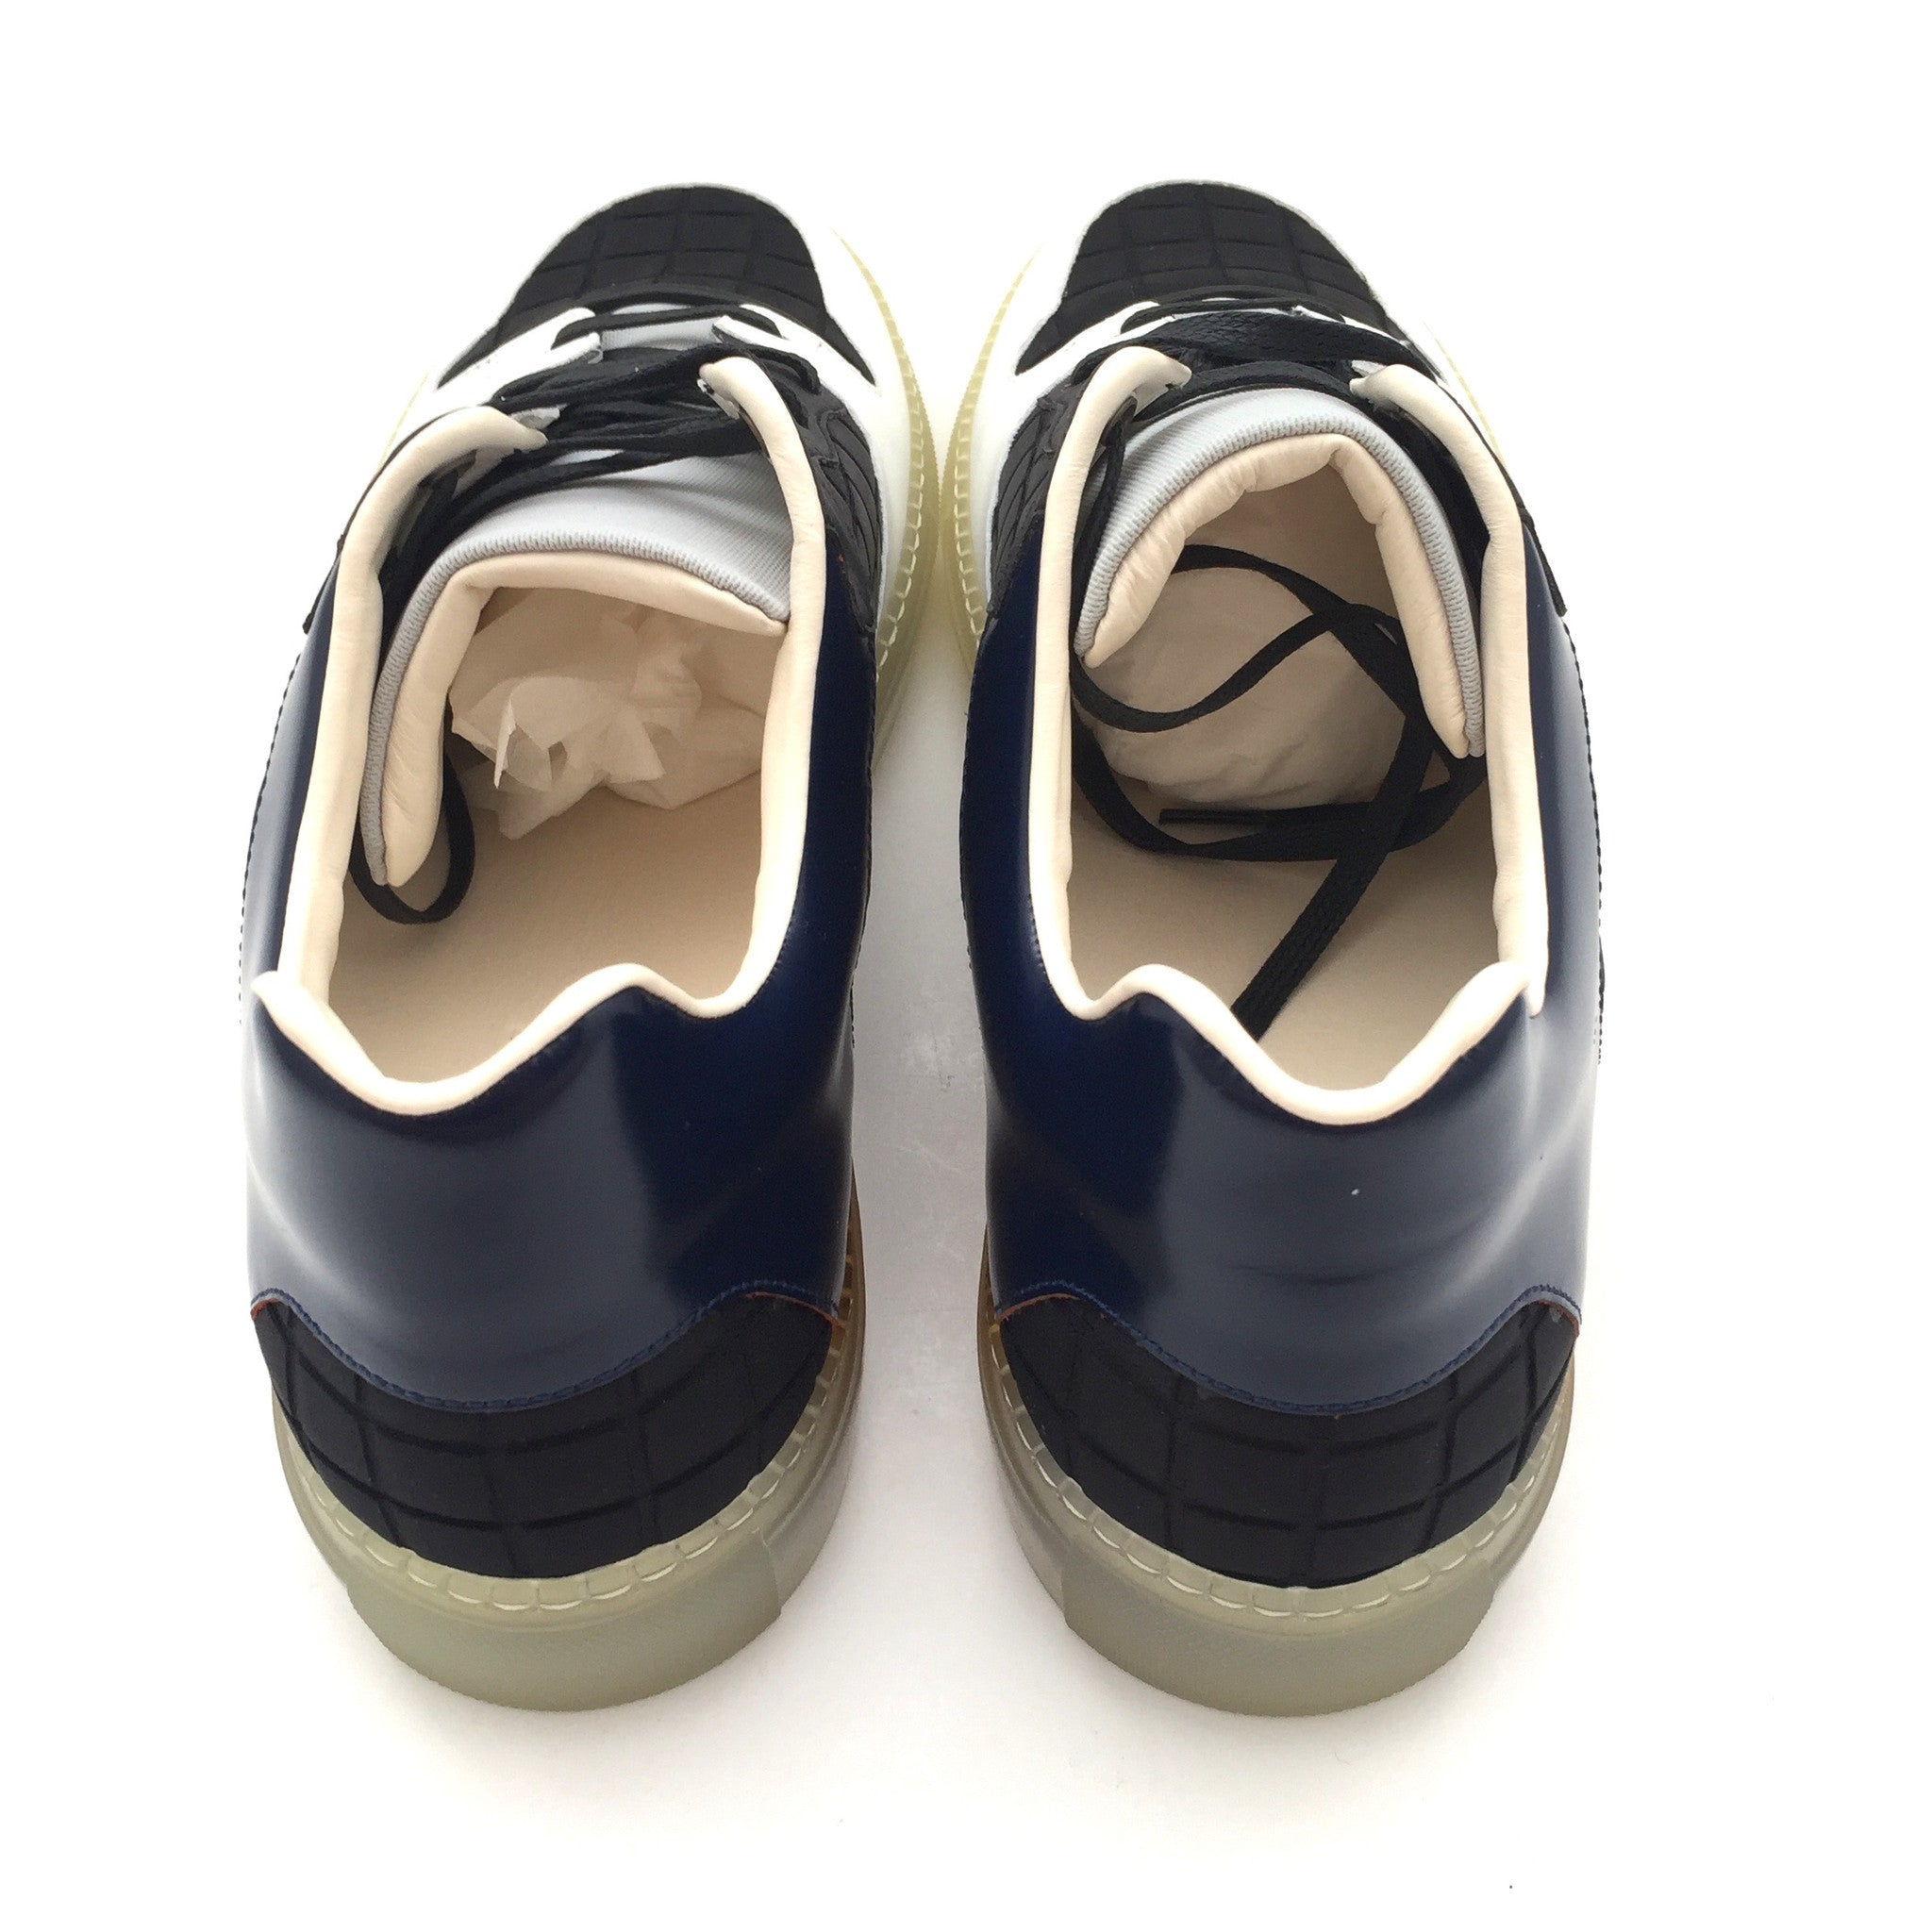 Balenciaga - Patchwork Low Top Sneakers